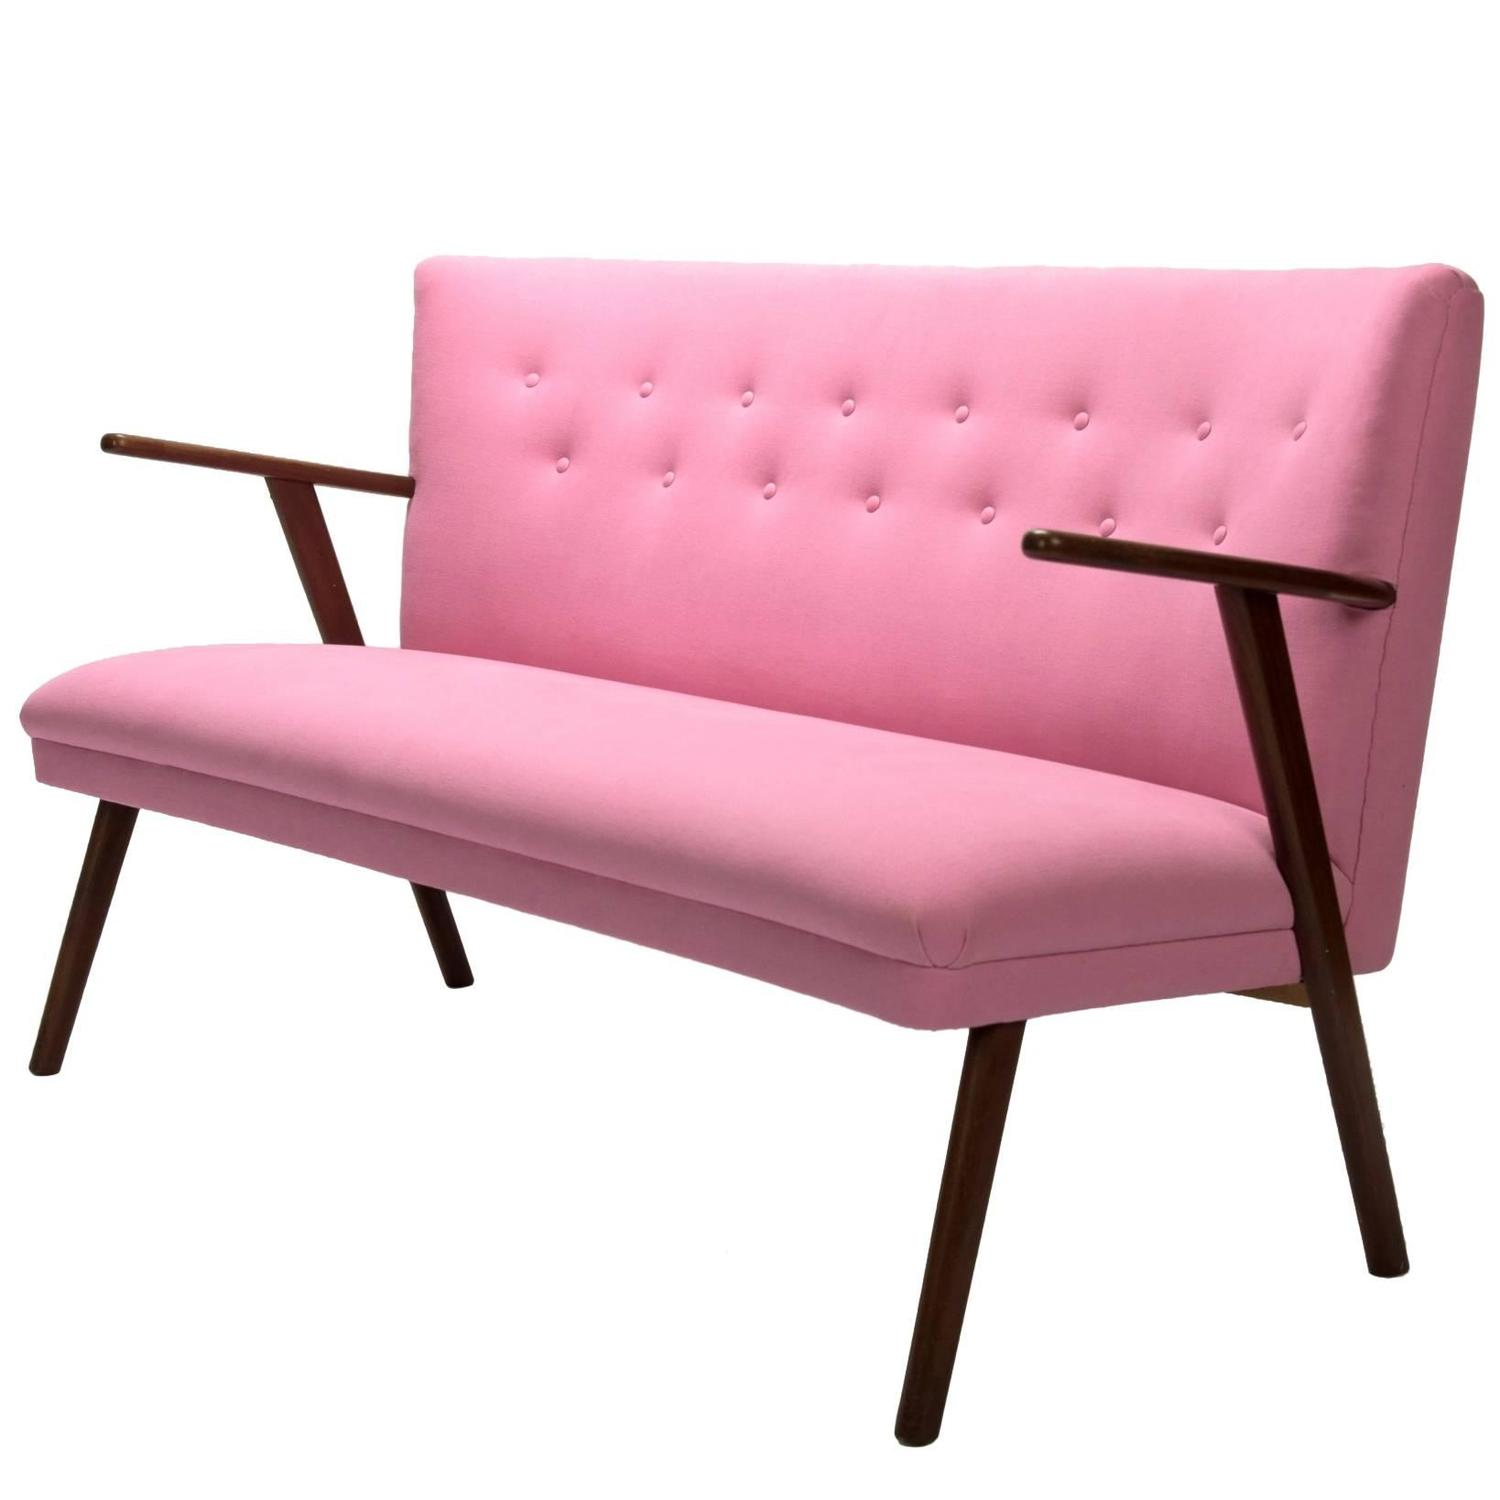 pink cocktail sofa swedish mid century modern design. Black Bedroom Furniture Sets. Home Design Ideas